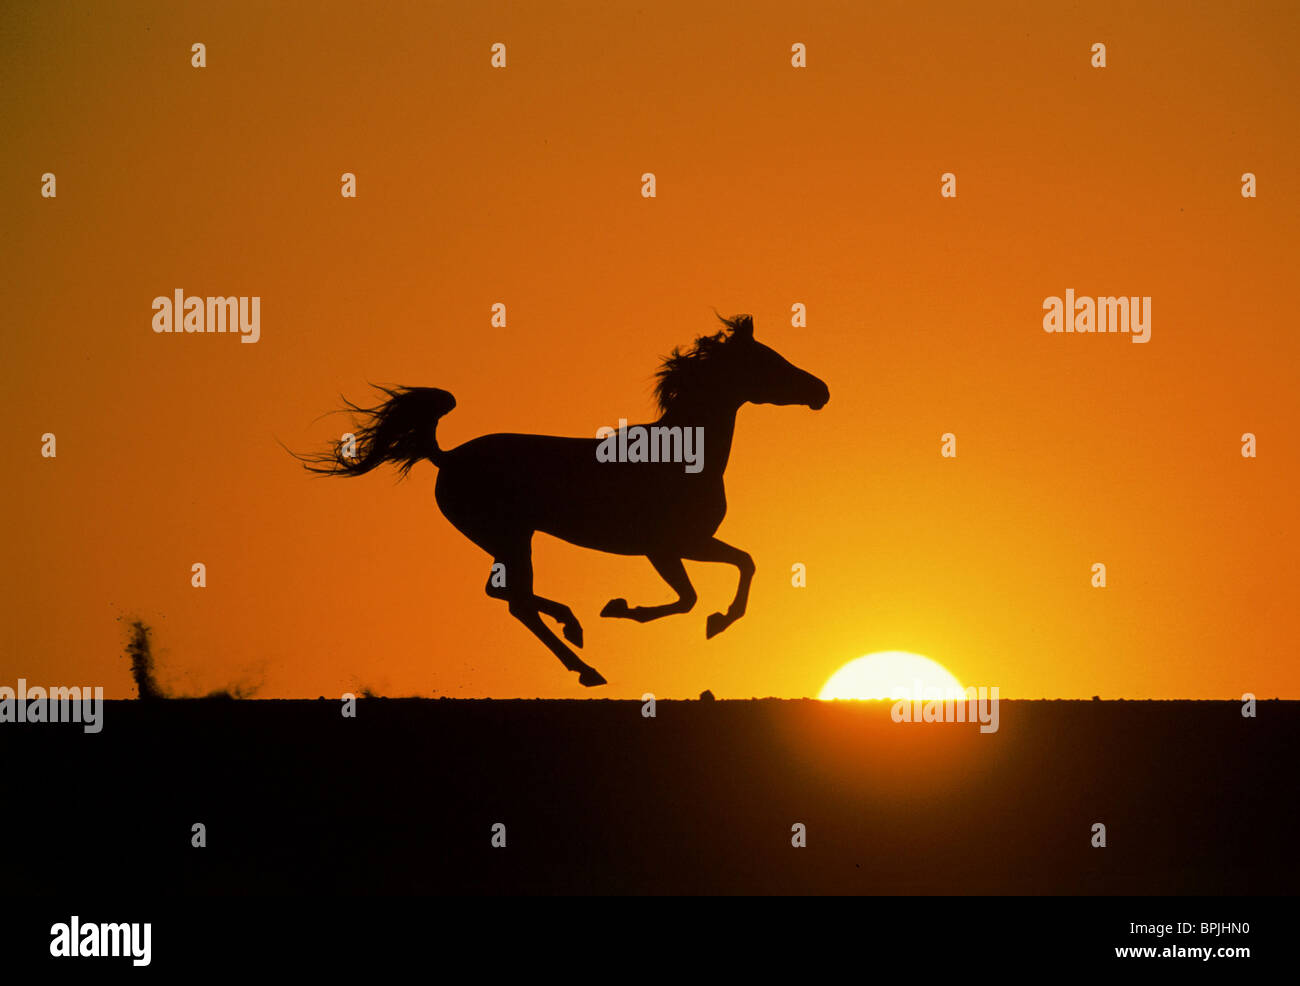 THE BLACK STALLION IN SUNSET THE YOUNG BLACK STALLION (2003) - Stock Image